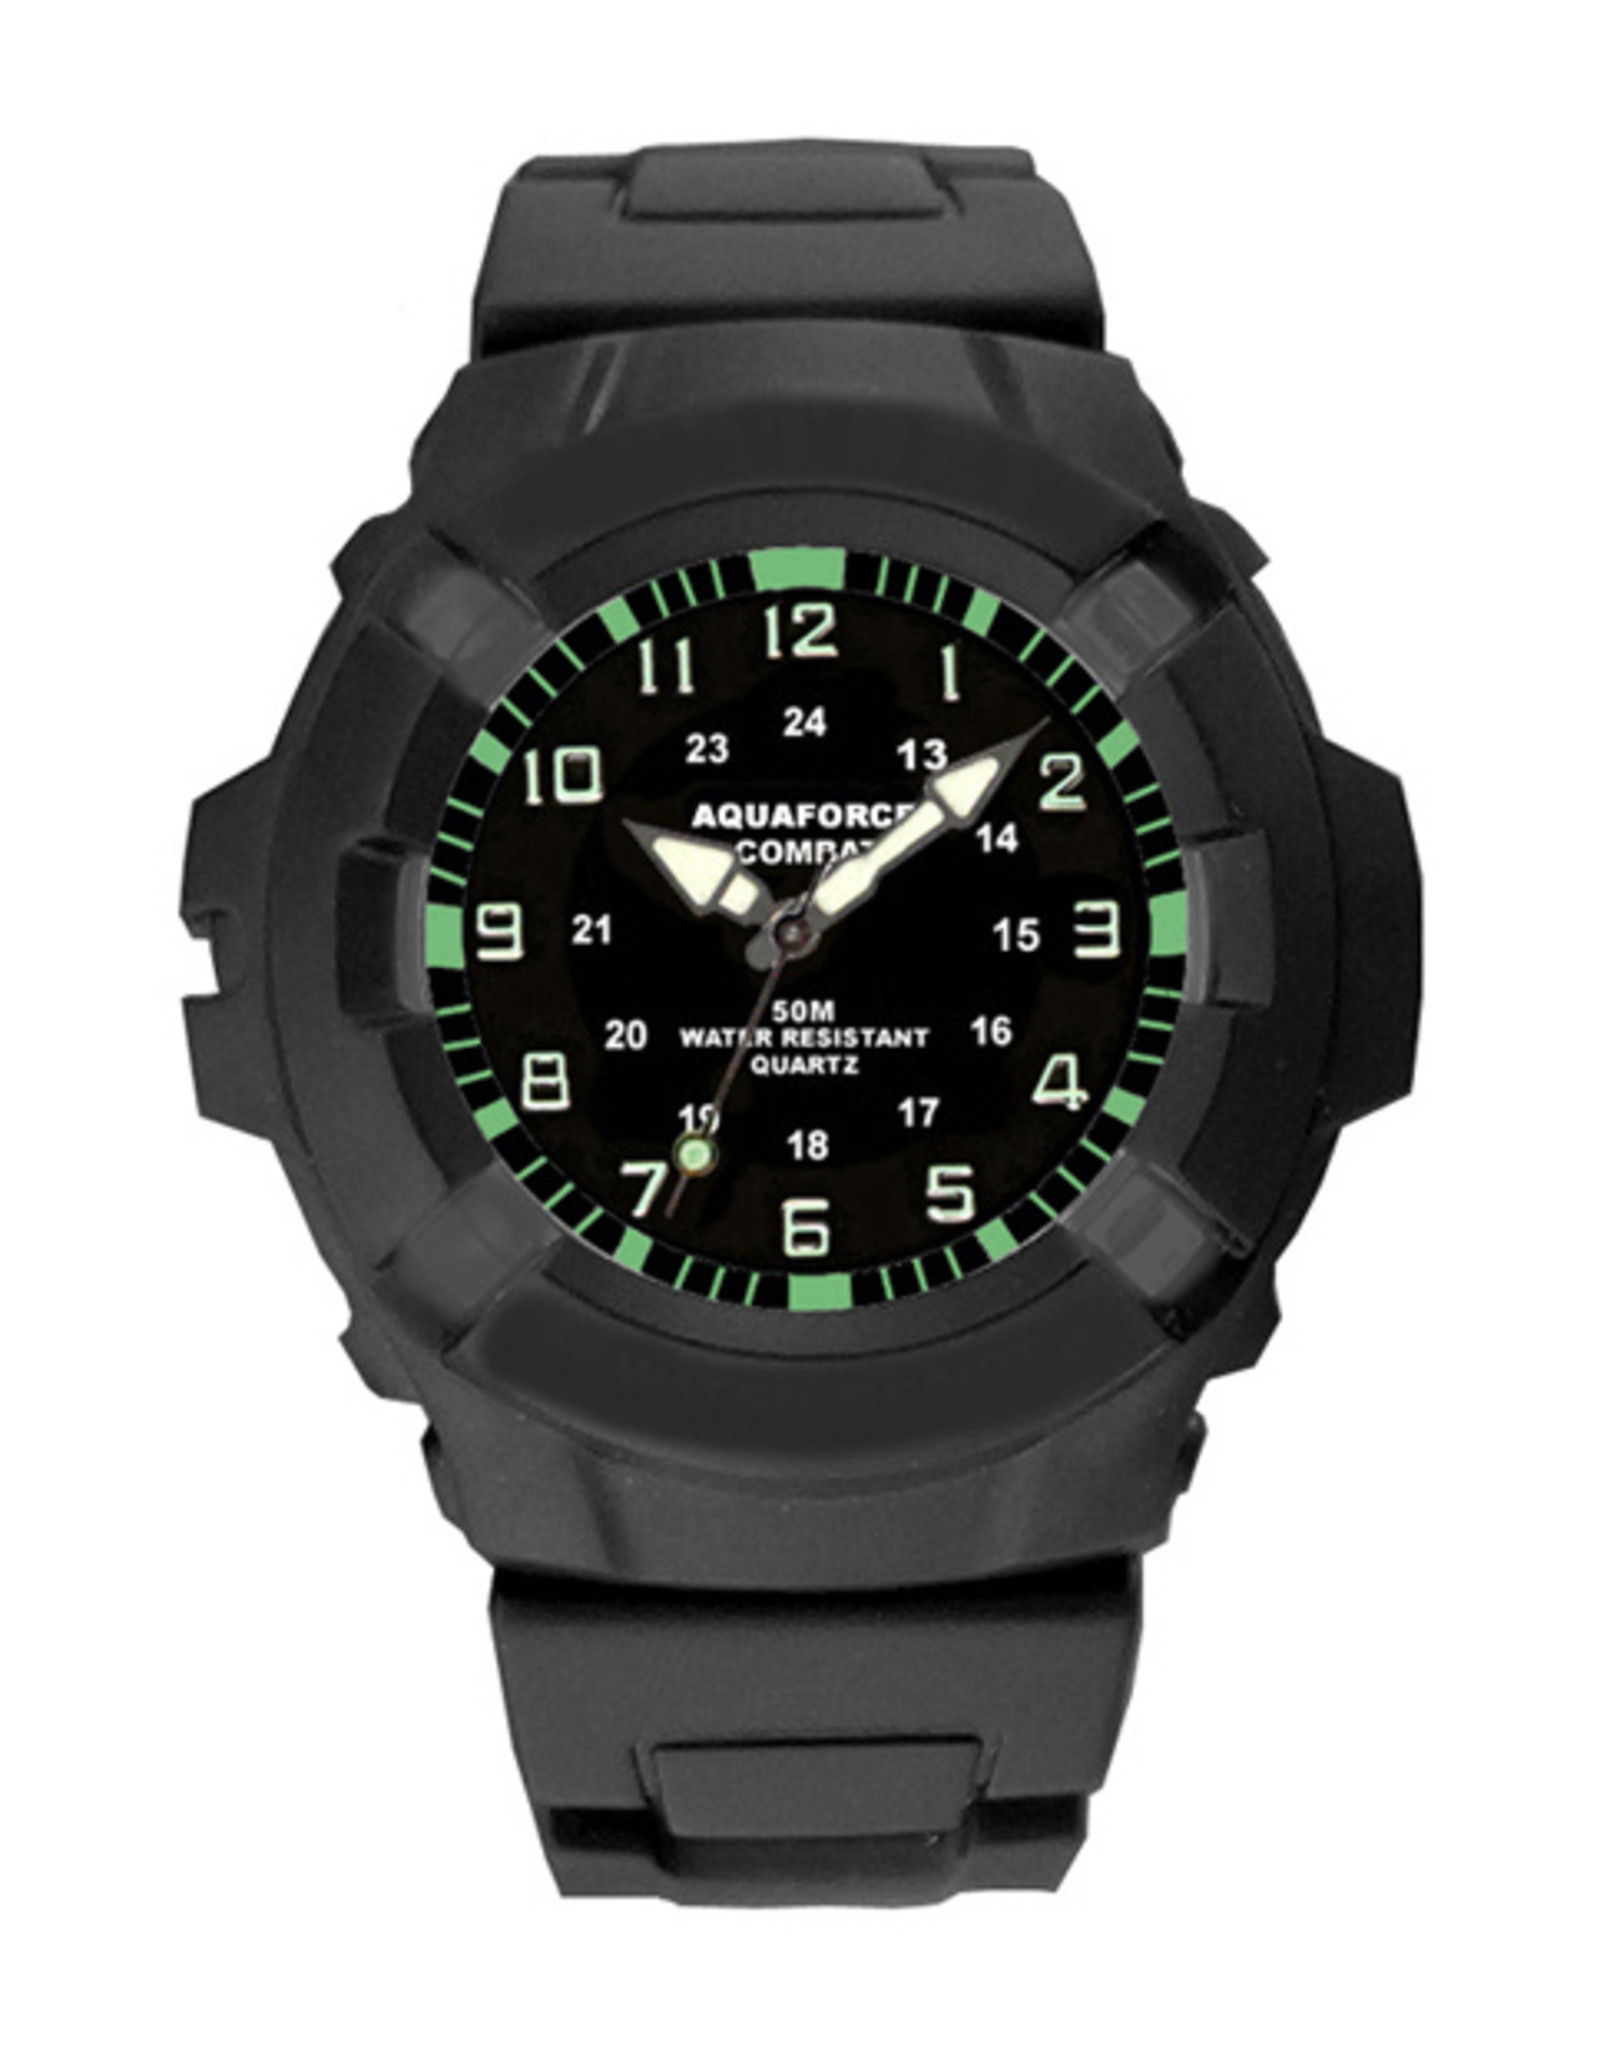 AQUAFORCE Analog Quartz Military Tactical Watch 24-002